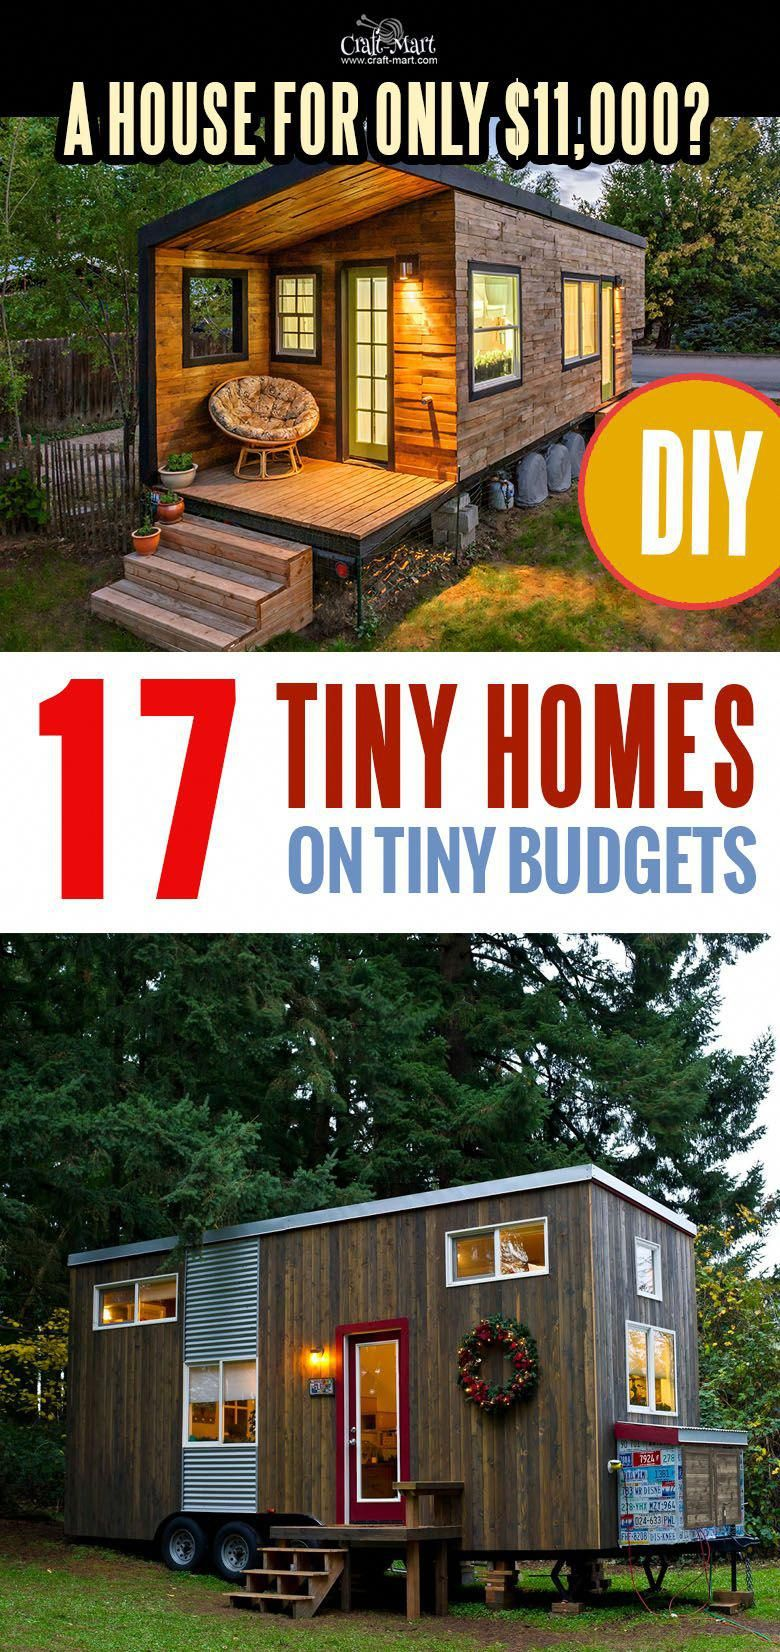 17 Best Custom Tiny House Trailers And Kits With Plans The Most Affordable Tiny Houses On Wheels You Tiny House Trailer Tiny House On Wheels Tiny Beach House